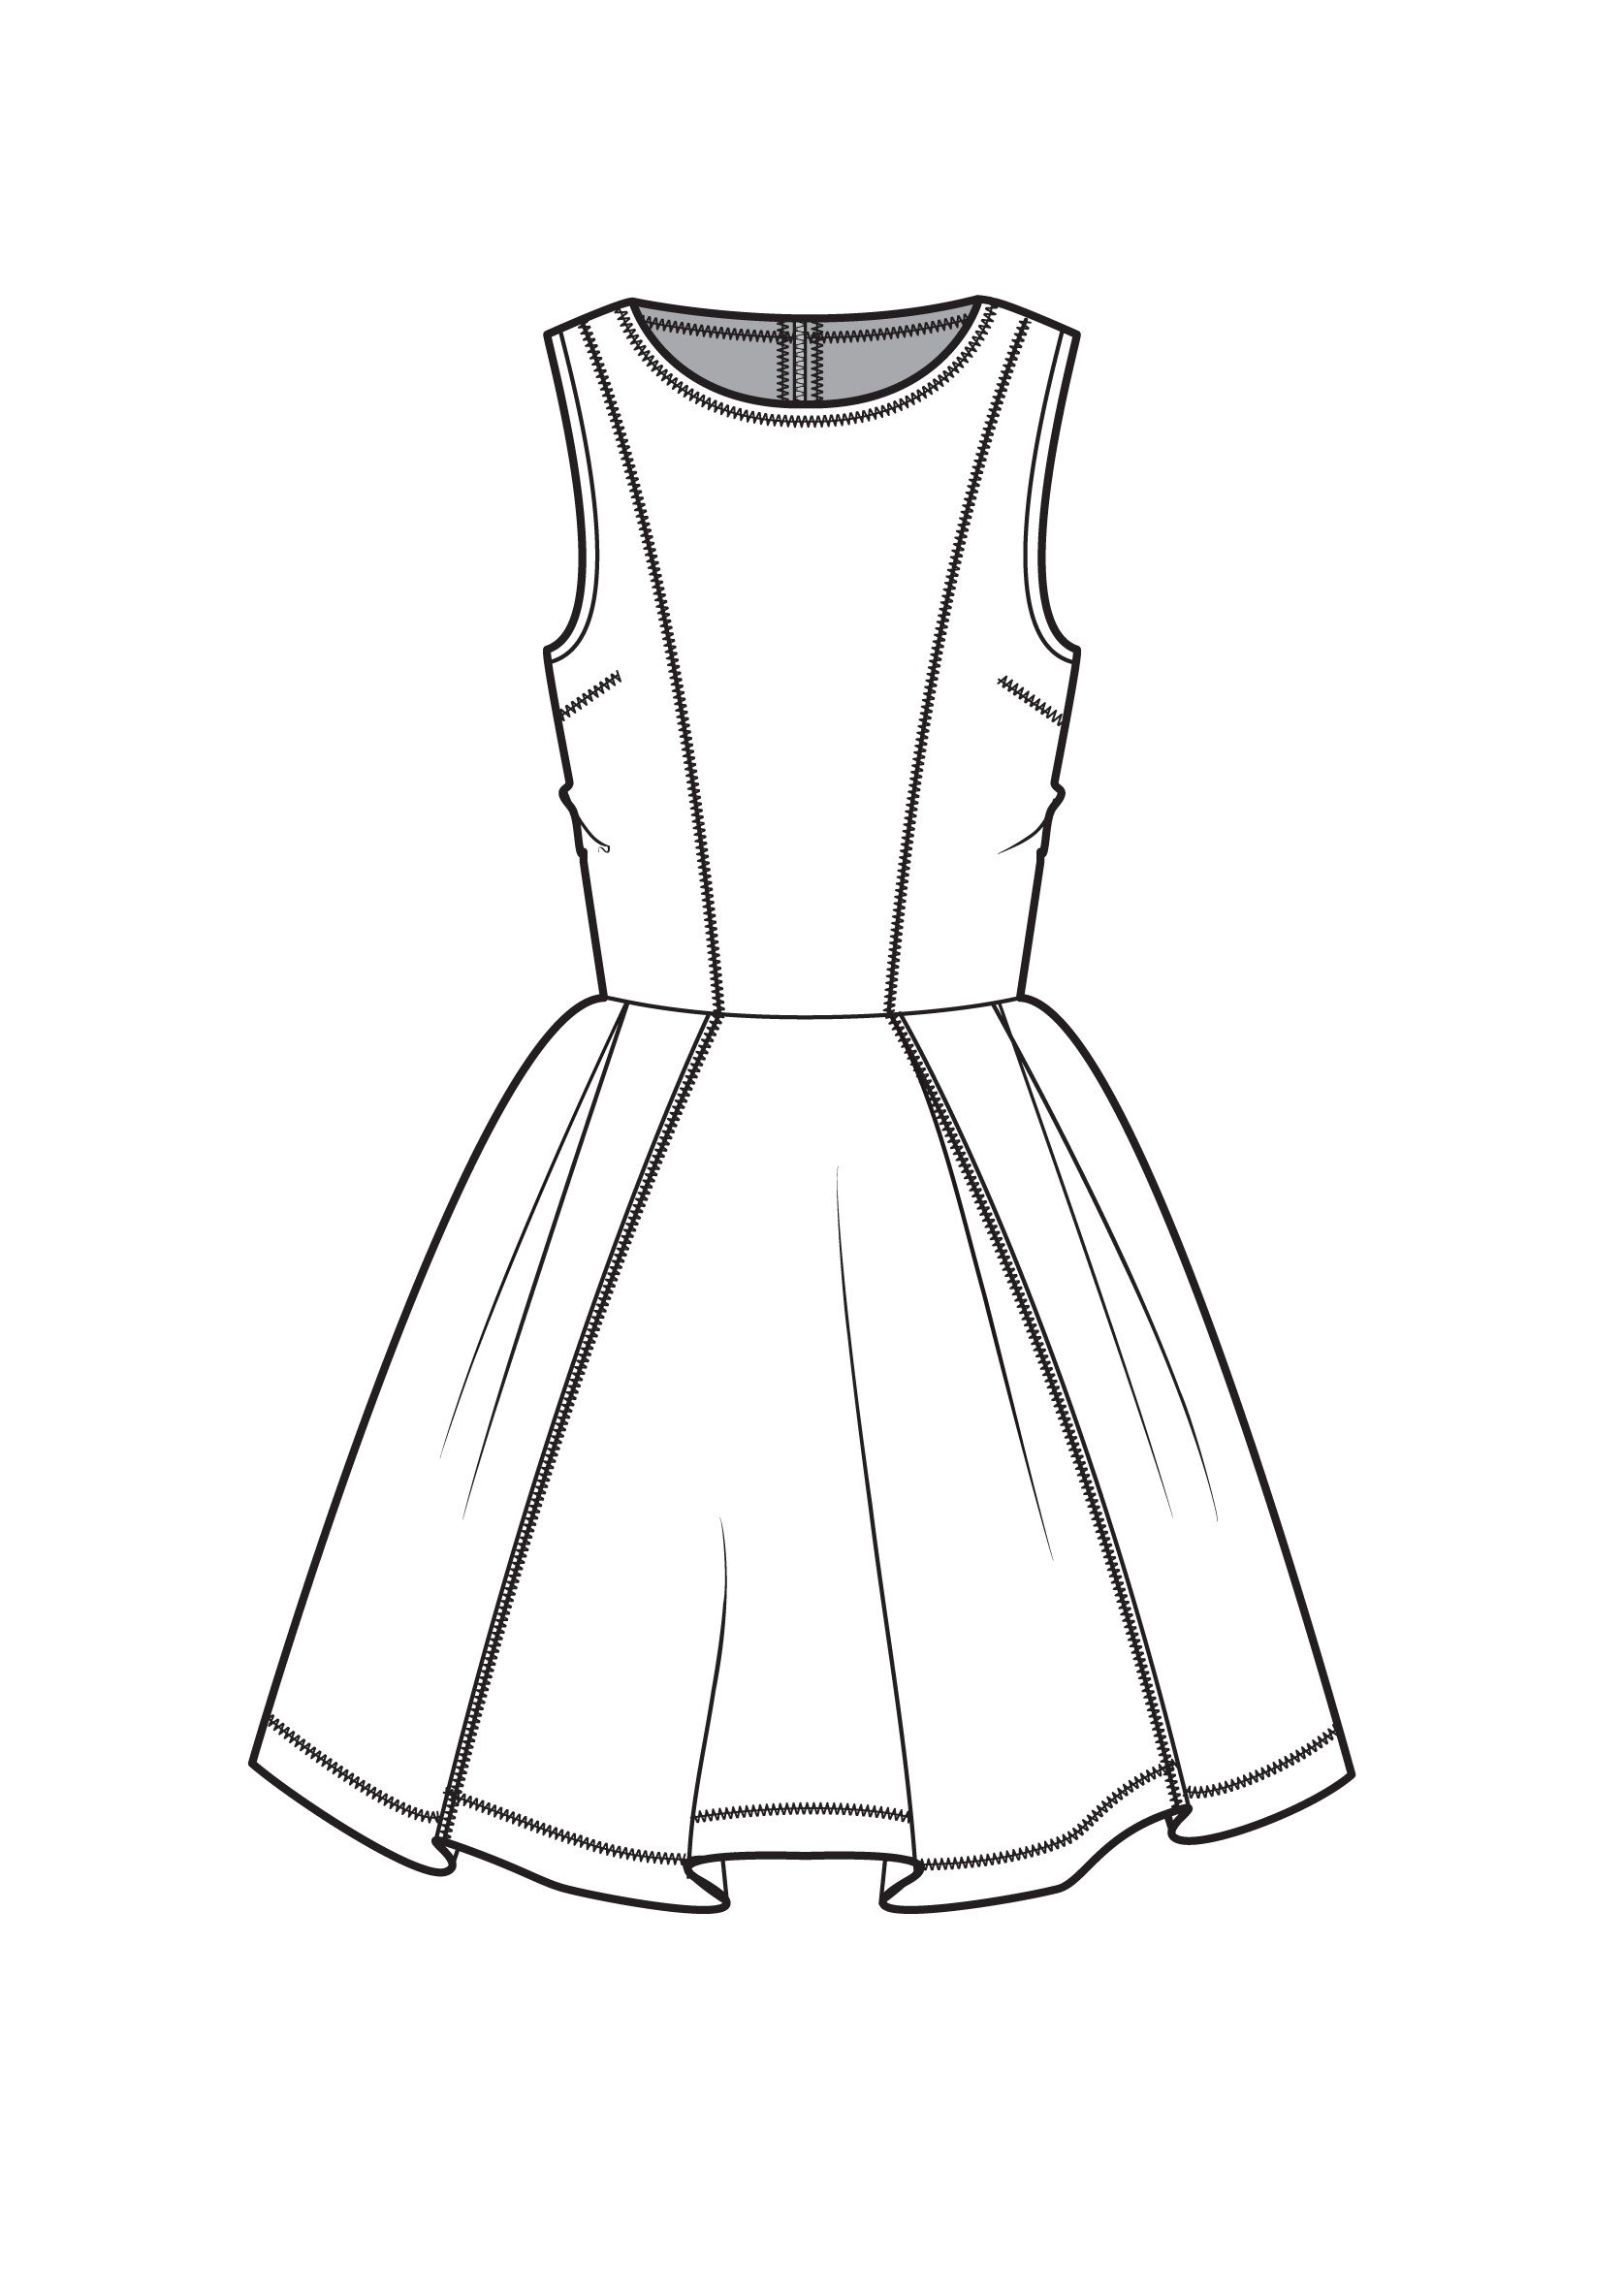 1675x2366 Fit And Flare Dress Fashion Flat Drawings